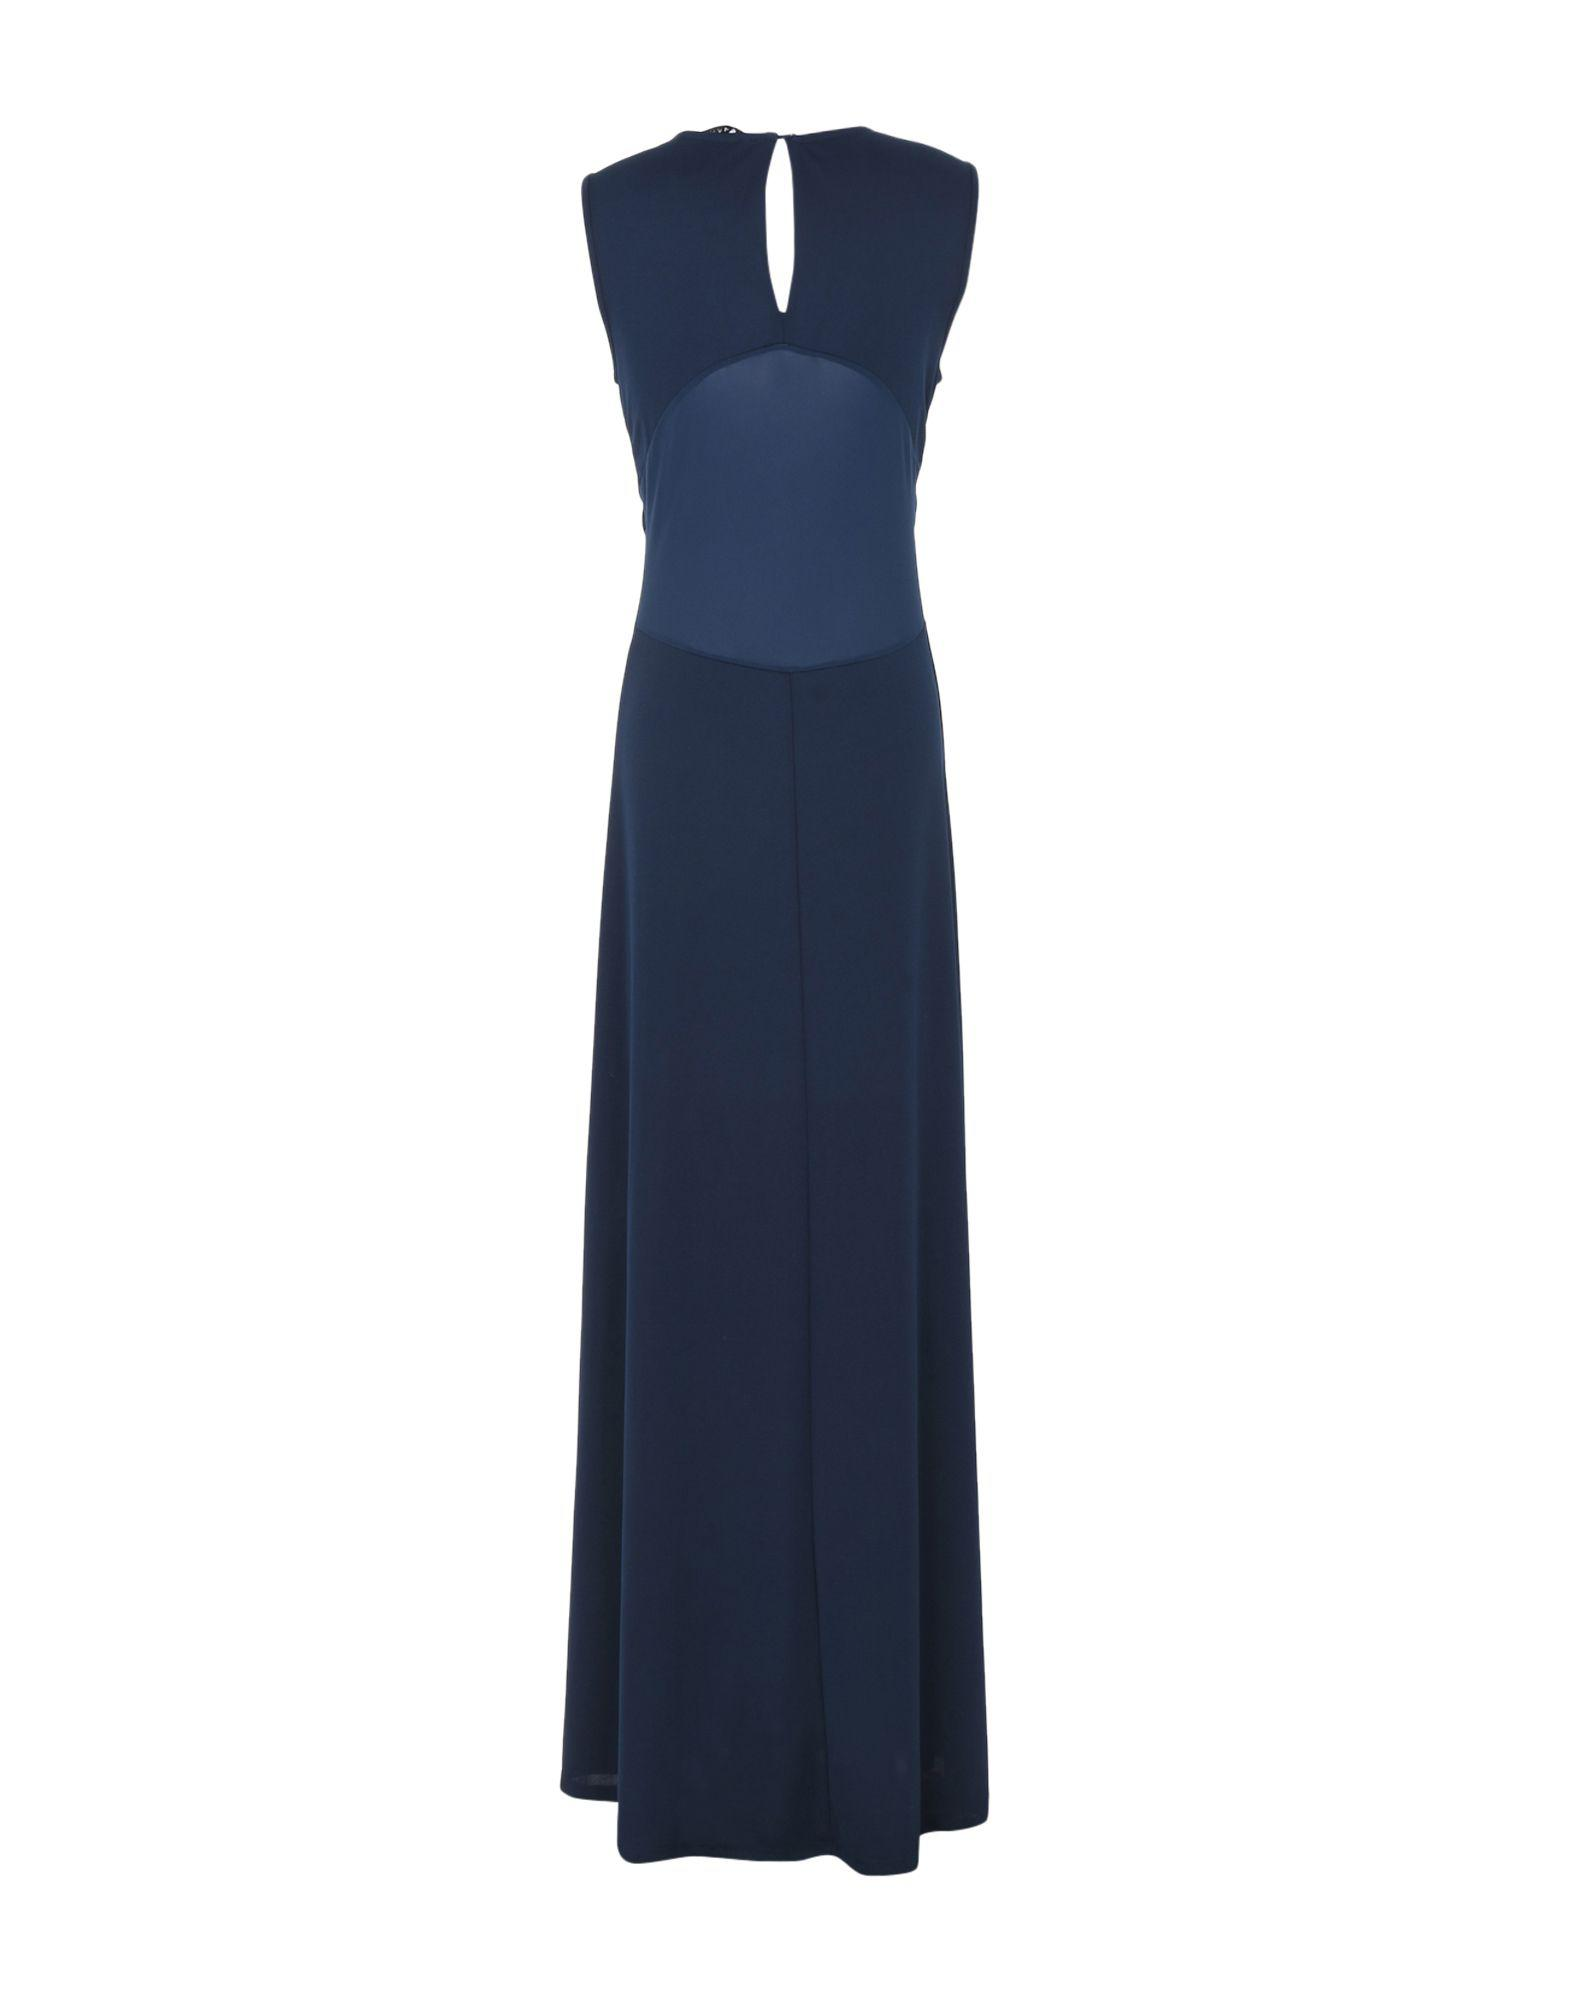 8188336a40 Lyst - Silvian Heach Long Dress in Blue